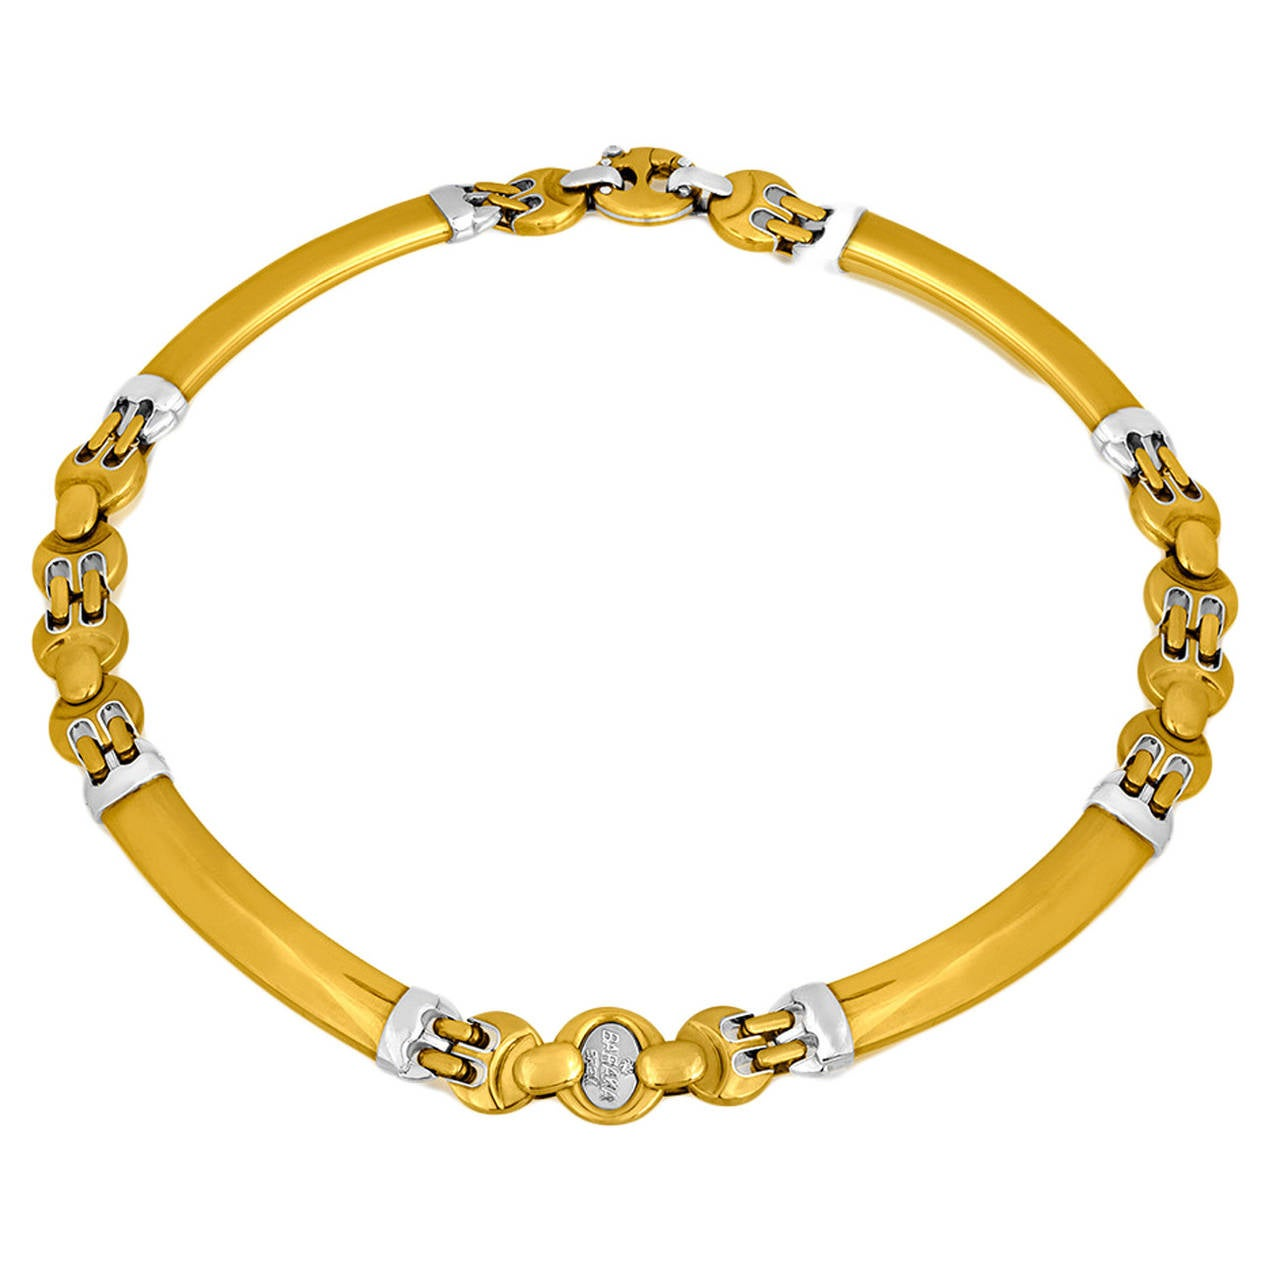 diamond en israelsson necklace product emma stockholm gold